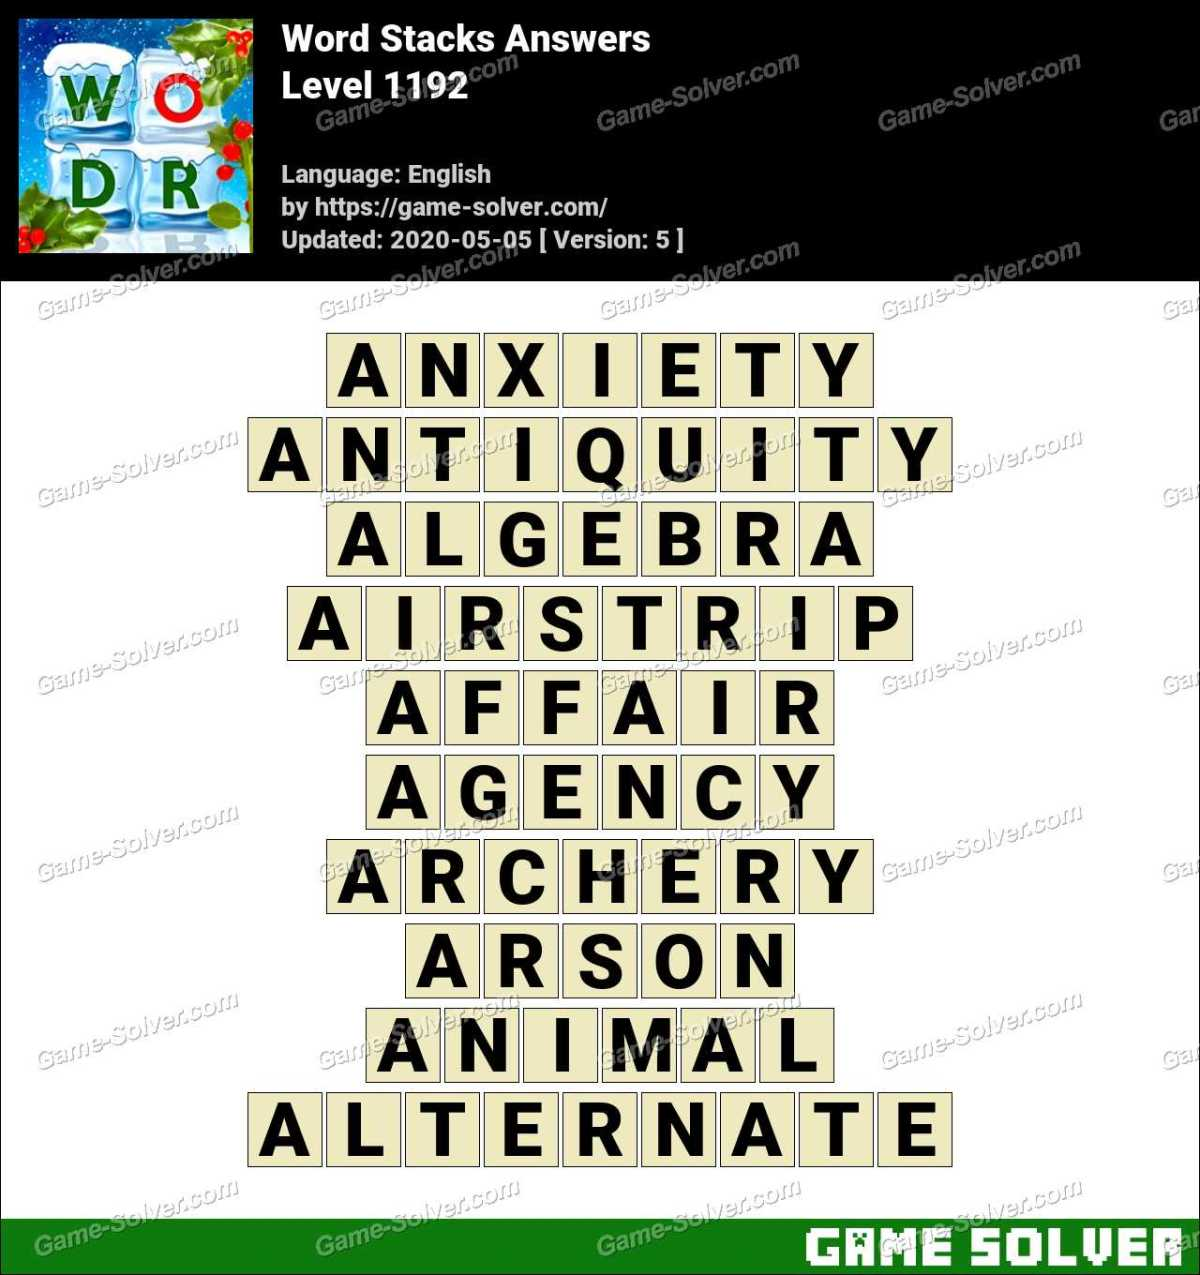 Word Stacks Level 1192 Answers